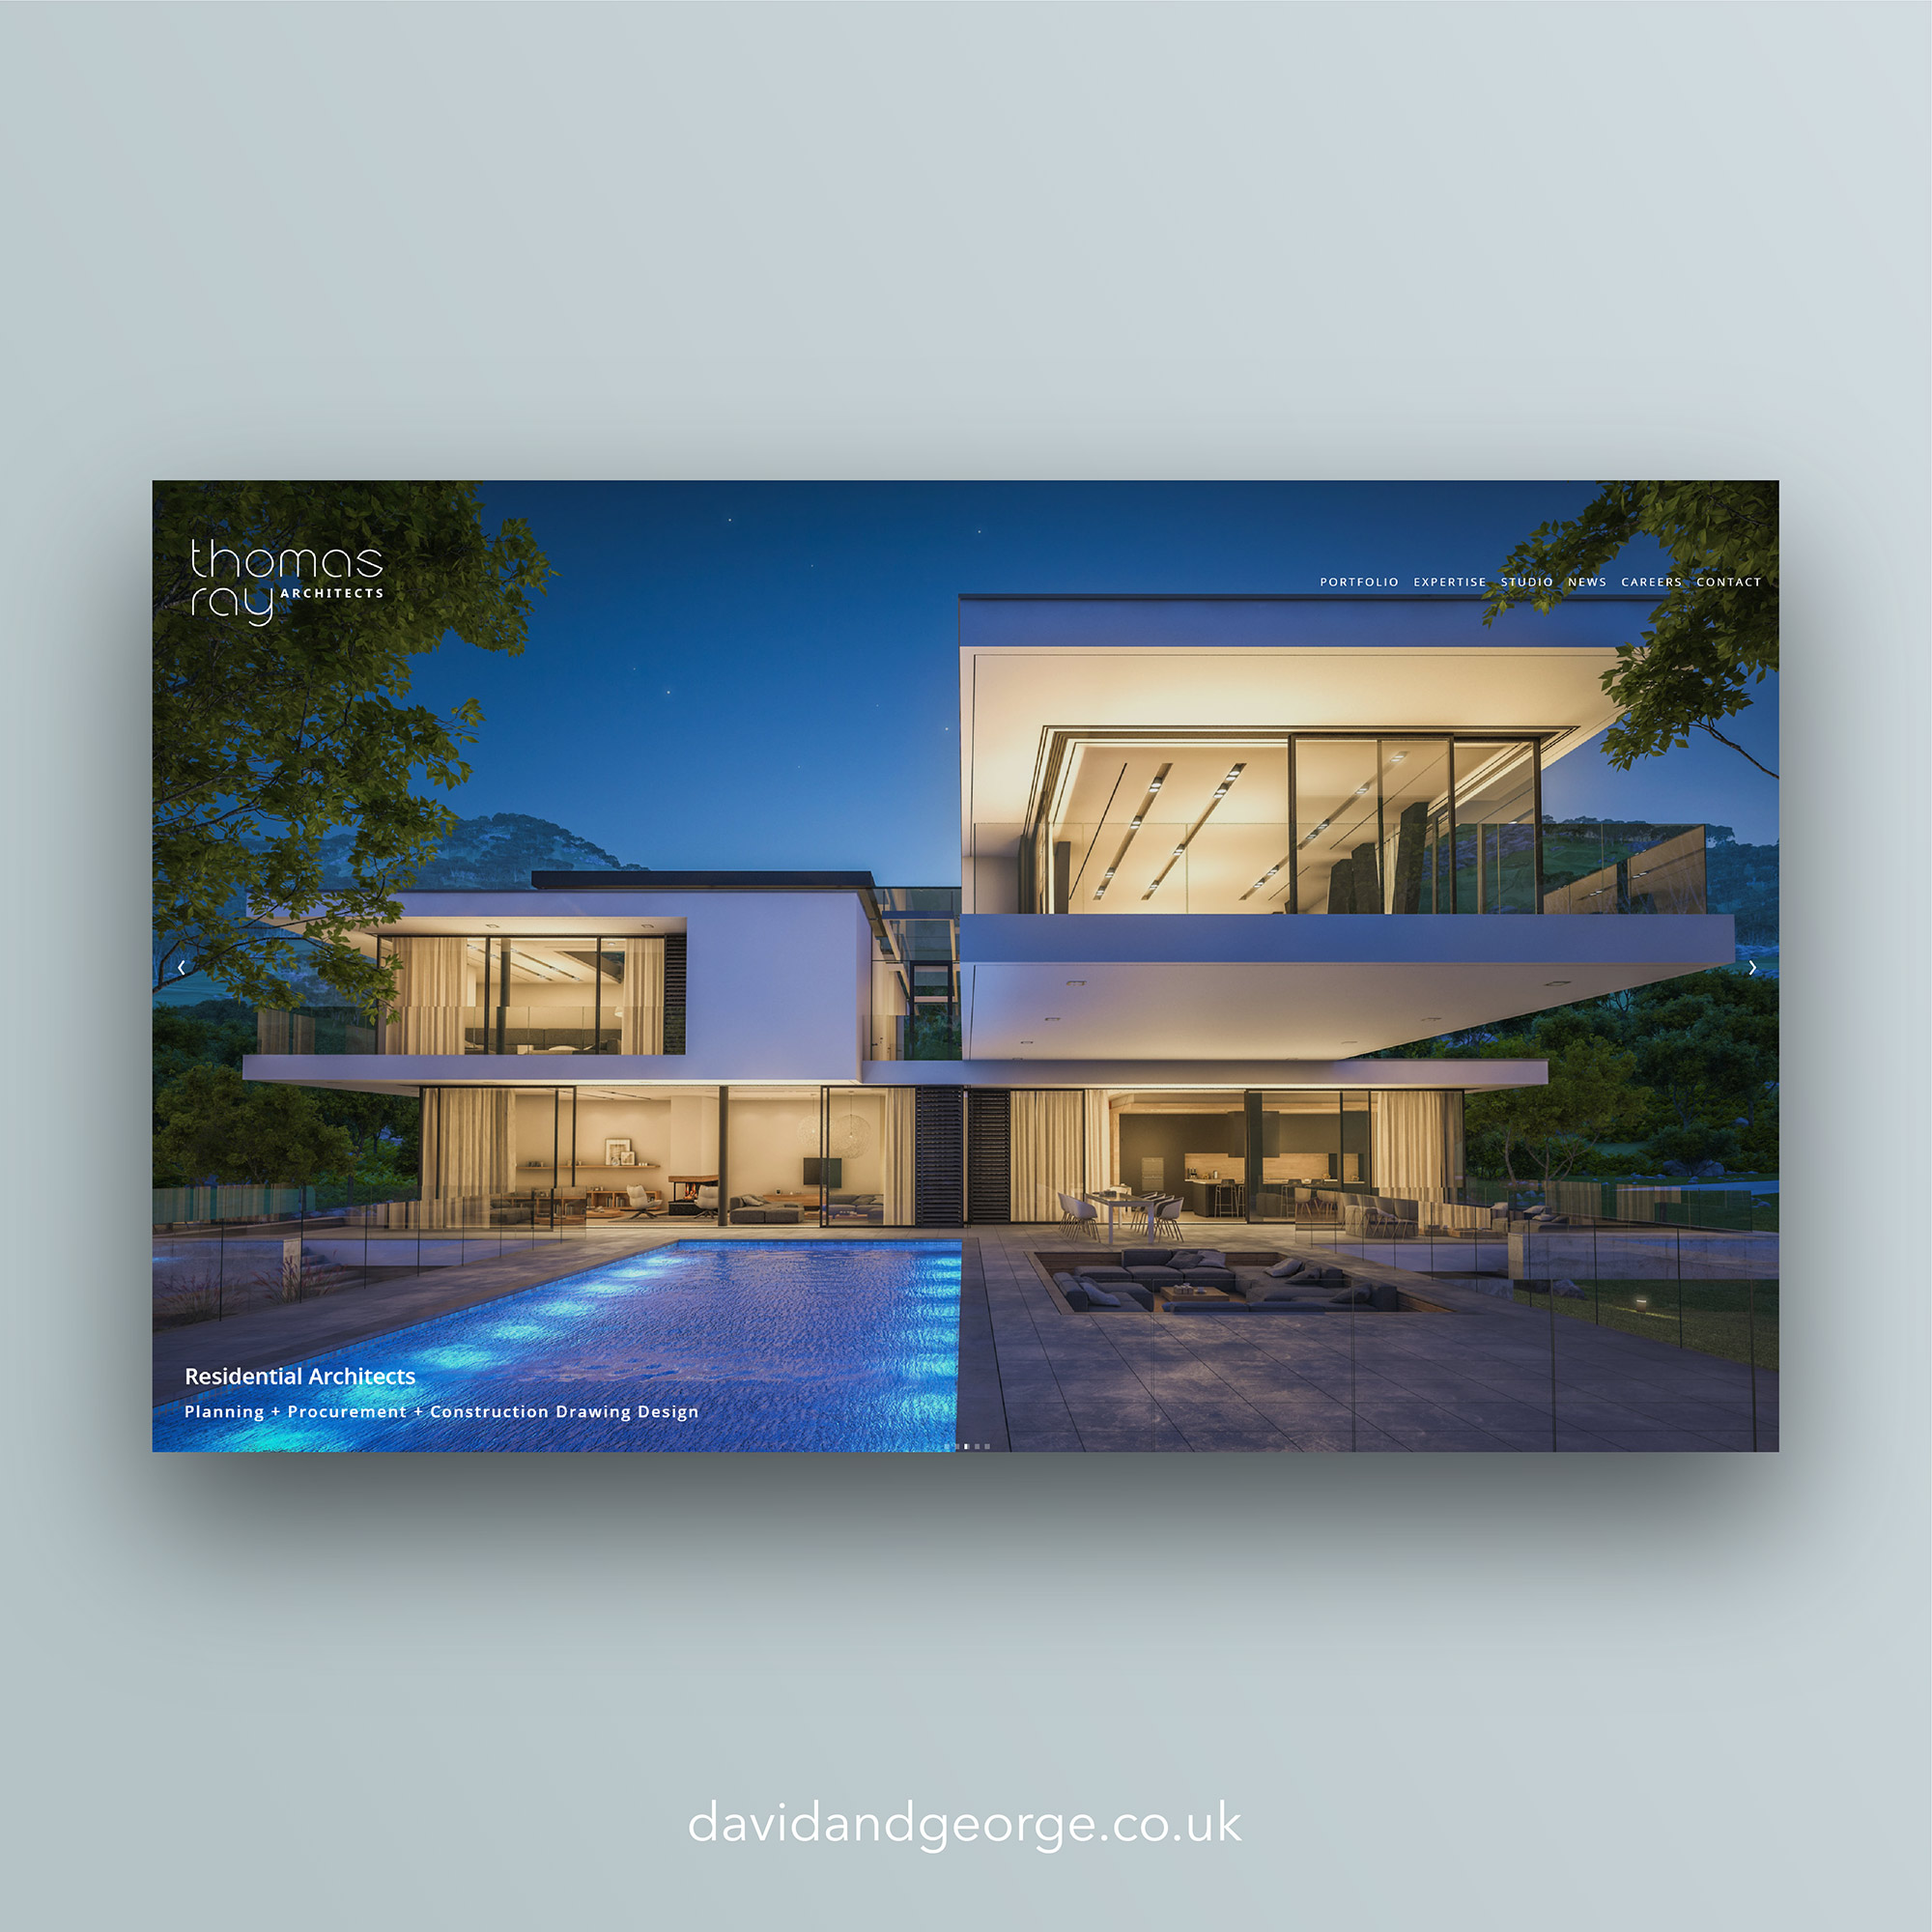 squarespace-website-design-london-edinburgh-uk-david-and-george-thomas-ray-architects.jpg